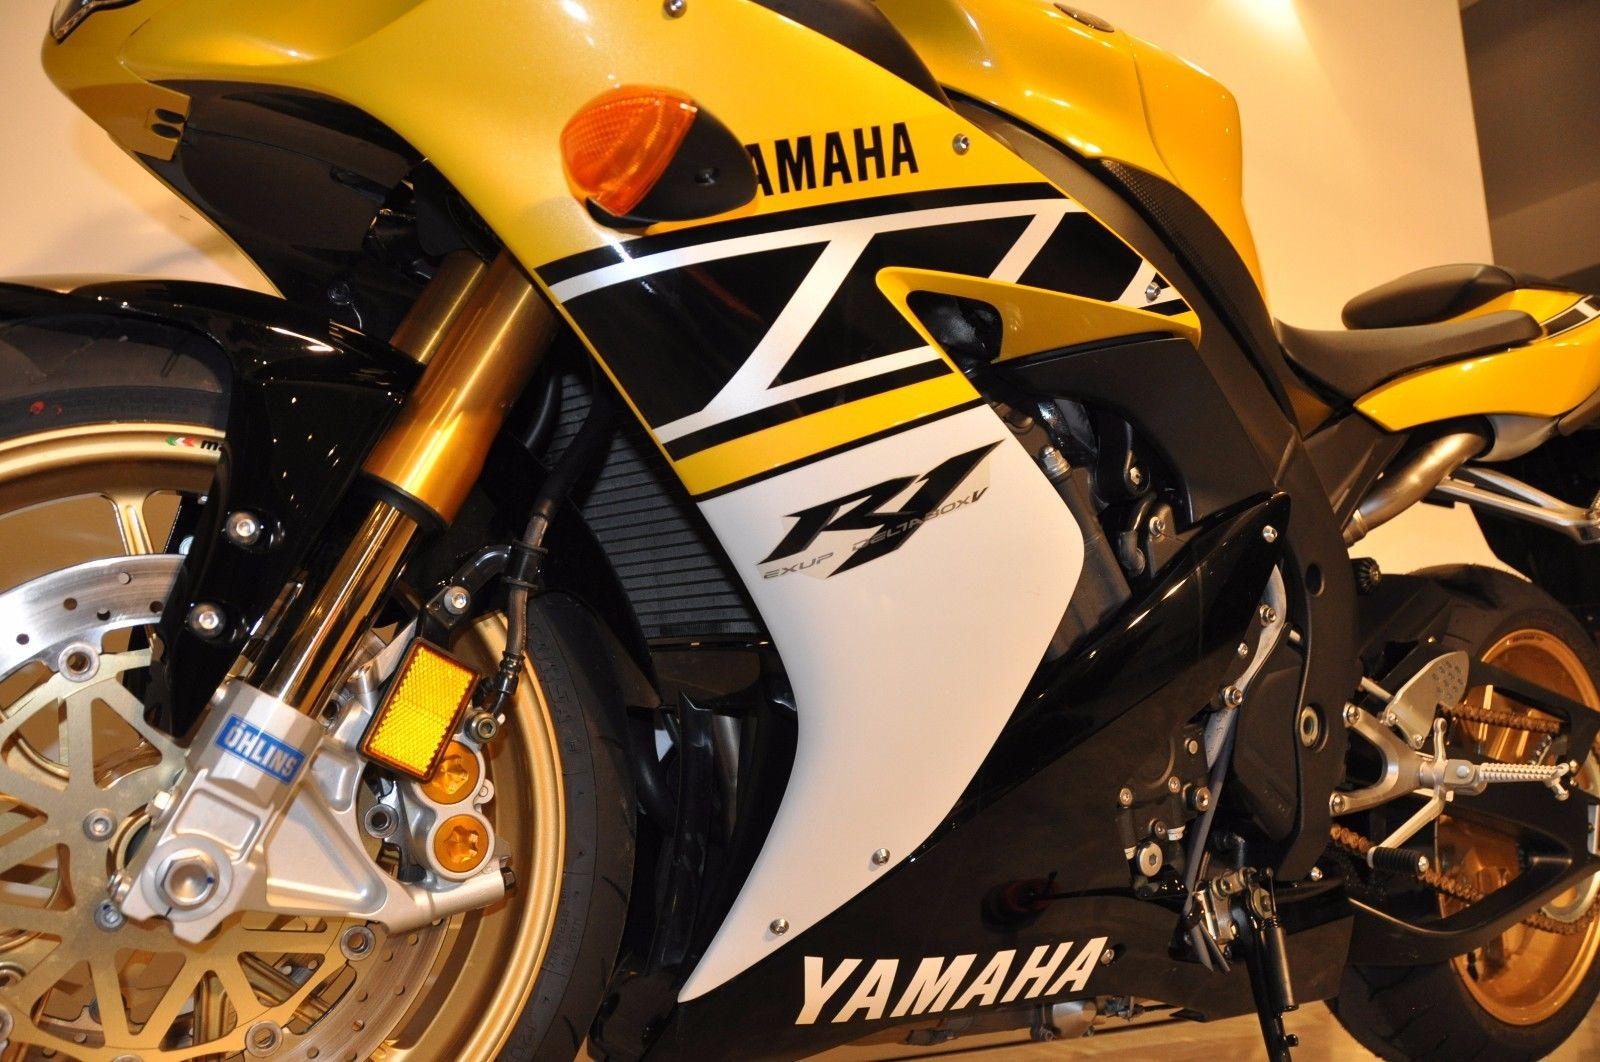 ... be thankful Yamaha created. Check it out here, and then jump over the  Comments and share your thoughts: Worth more for the miles or the LE  graphics?